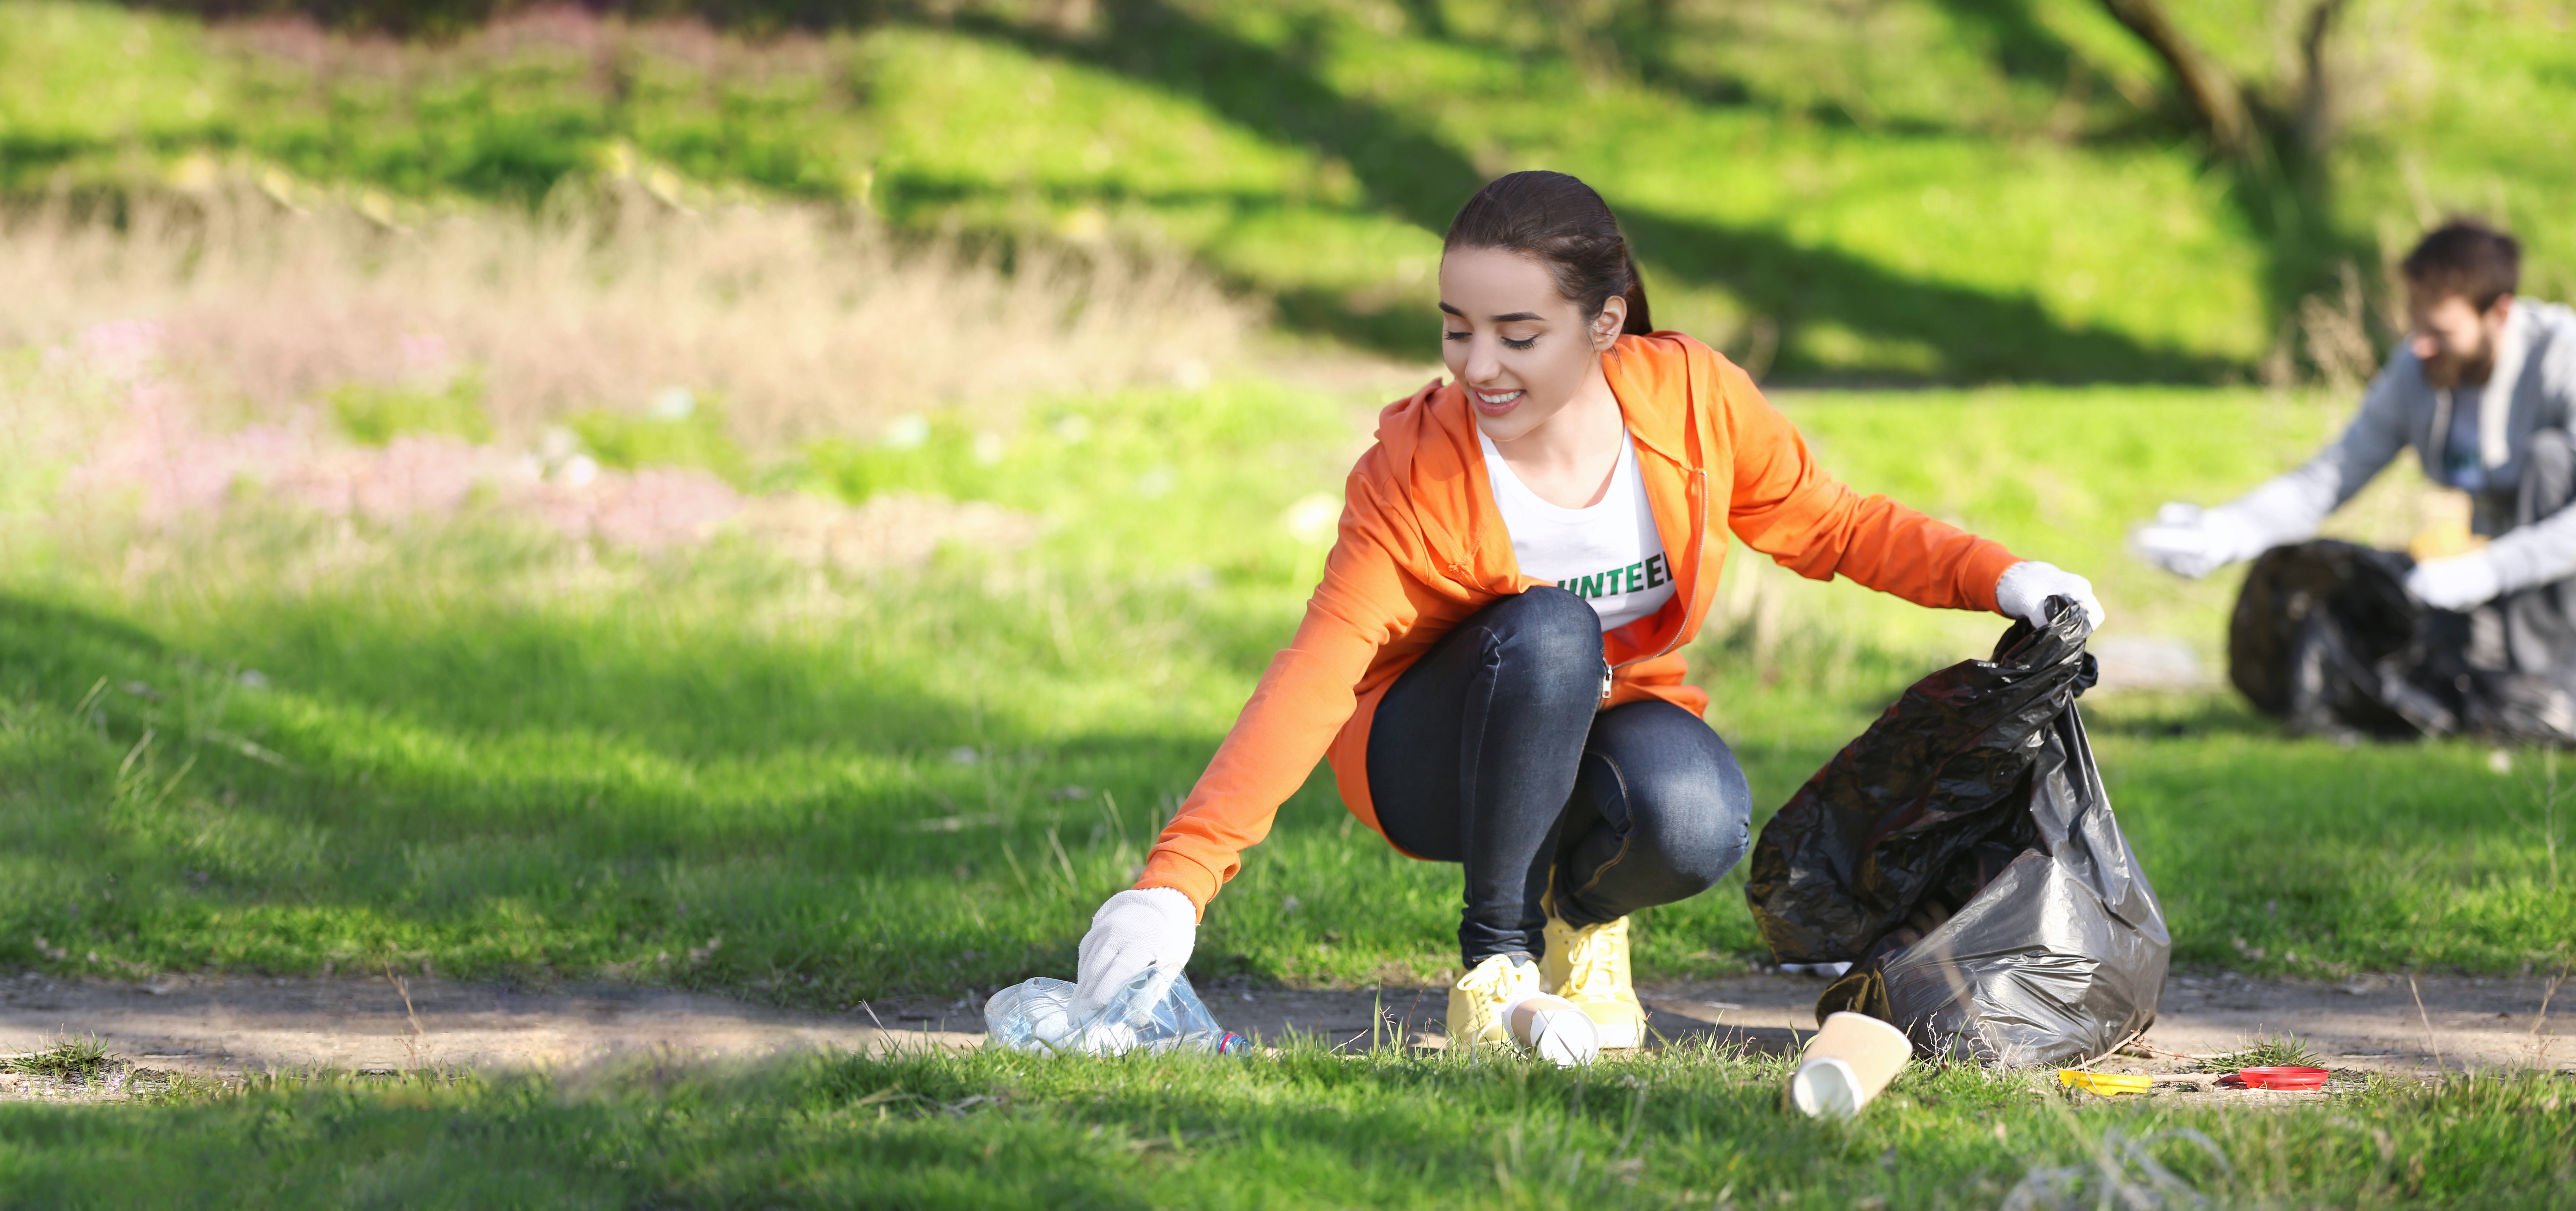 Earth-Day-Volunteering-to-Pick-Up-Trash_671096998_700x329